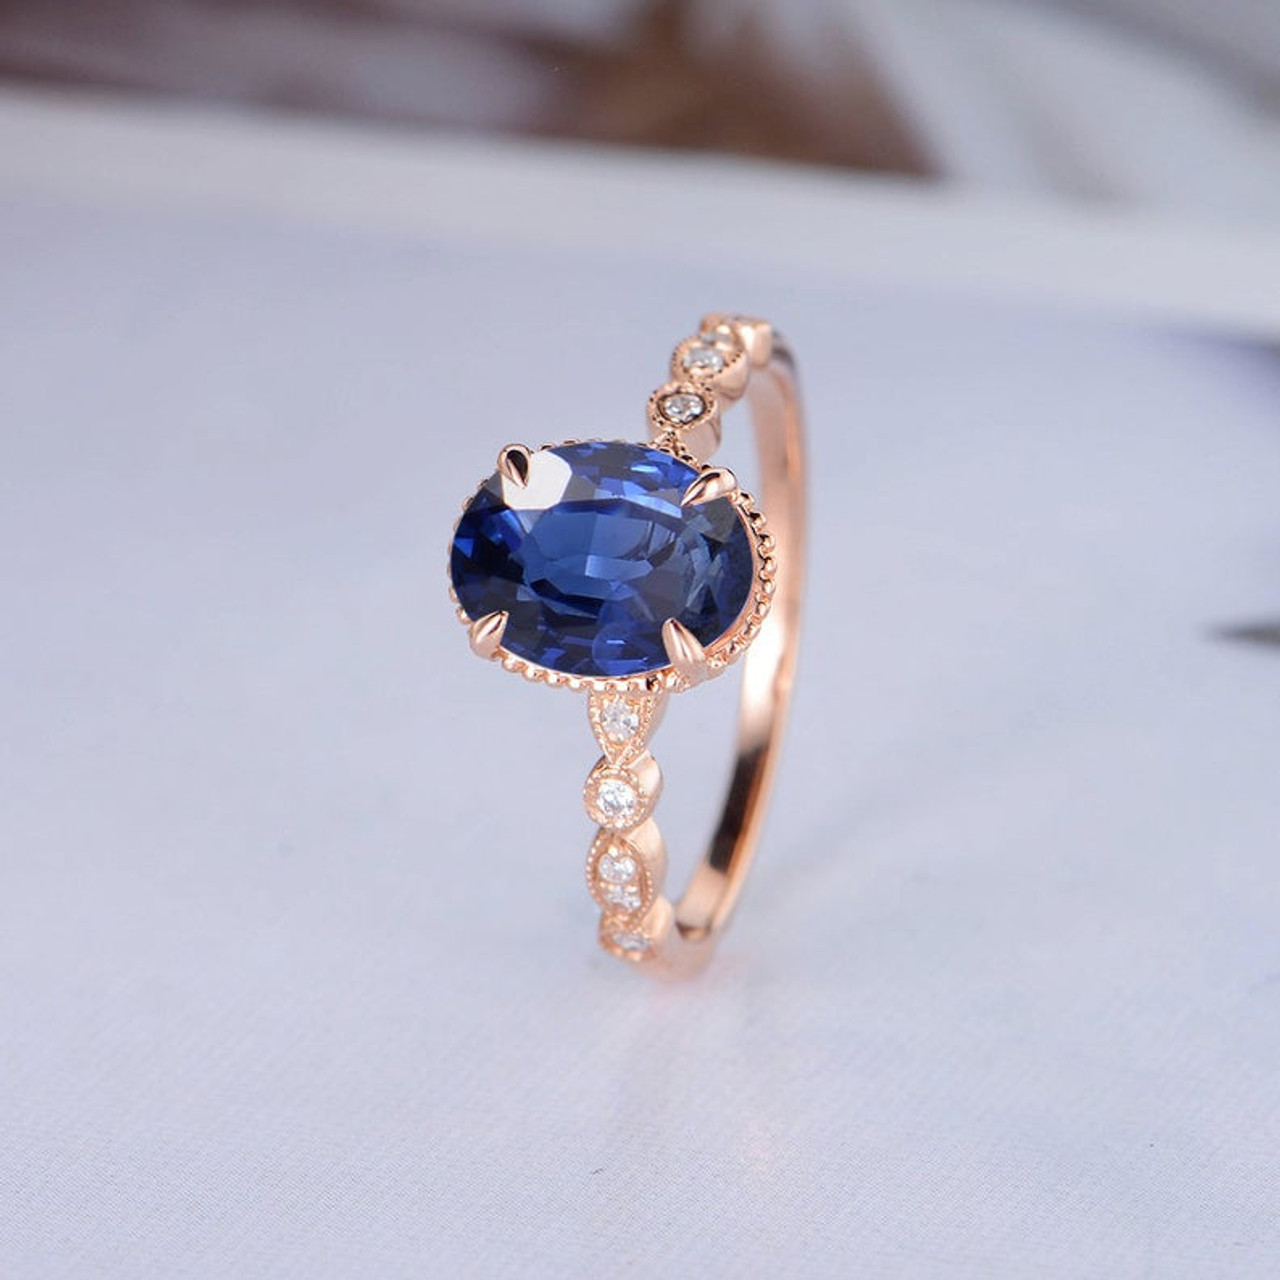 Oval Cut Lab Sapphire Engagement Ring Rose Gold Diamond Ring